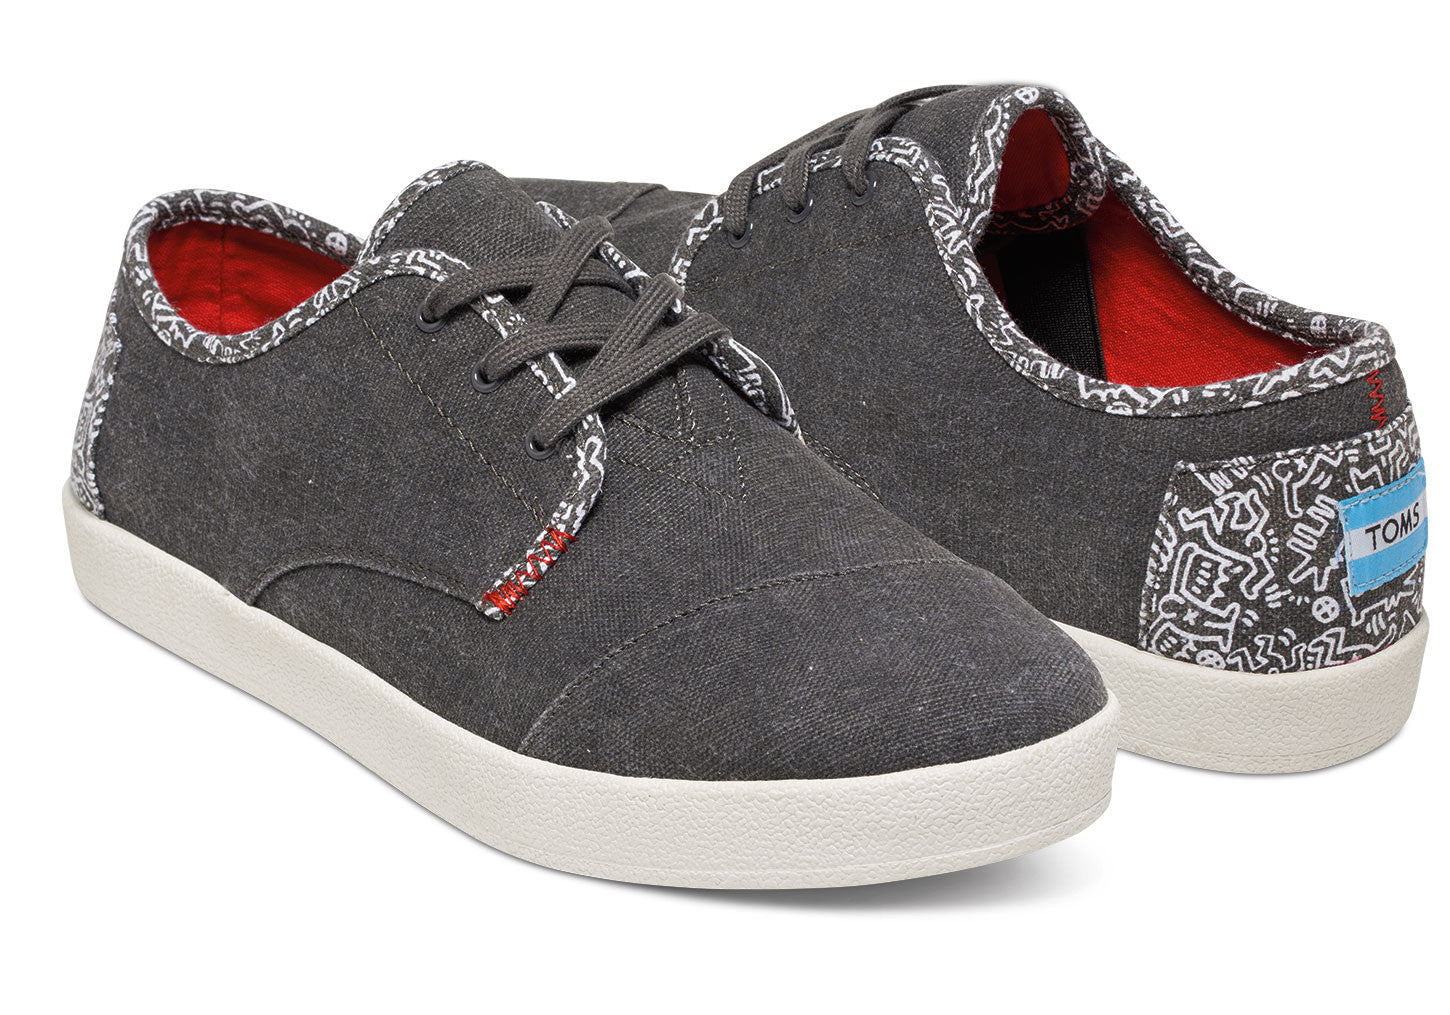 ... KEITH HARING CHALKBOARD MEN'S PASEOS - SustainTheFuture.us - The  Natural and Organic Way of ...